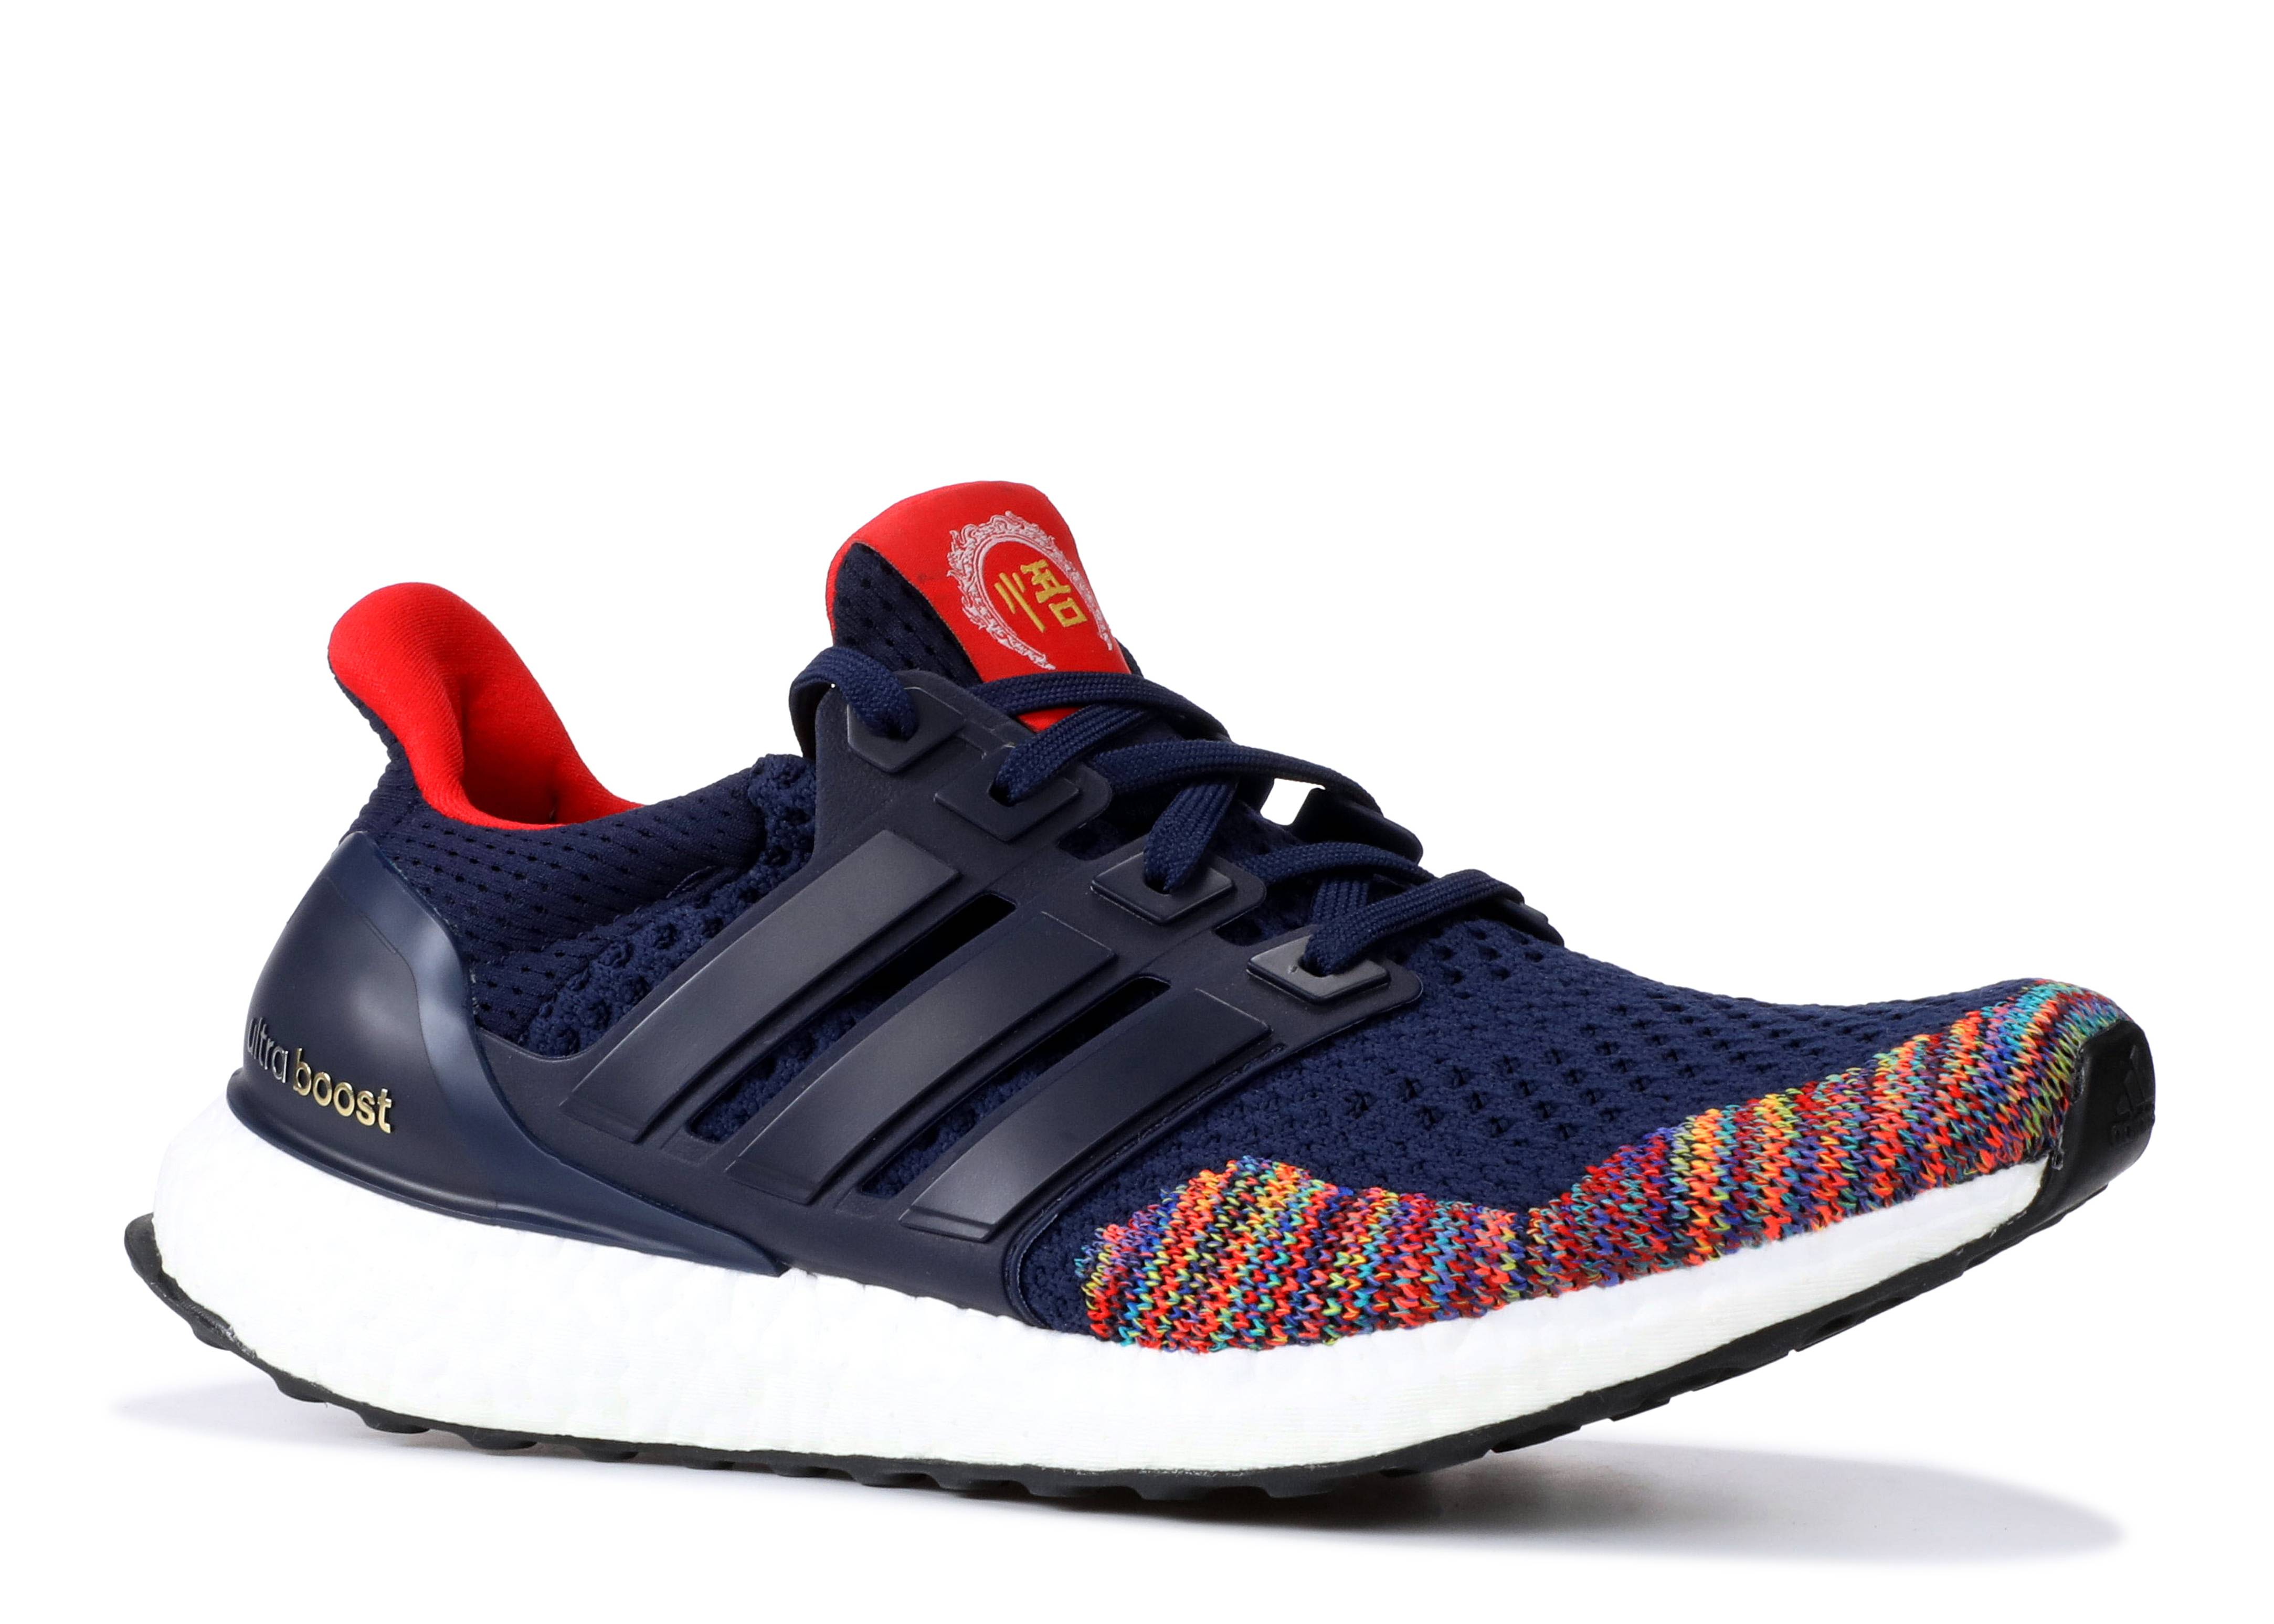 ultra boost chinese new year adidas aq3305. Black Bedroom Furniture Sets. Home Design Ideas